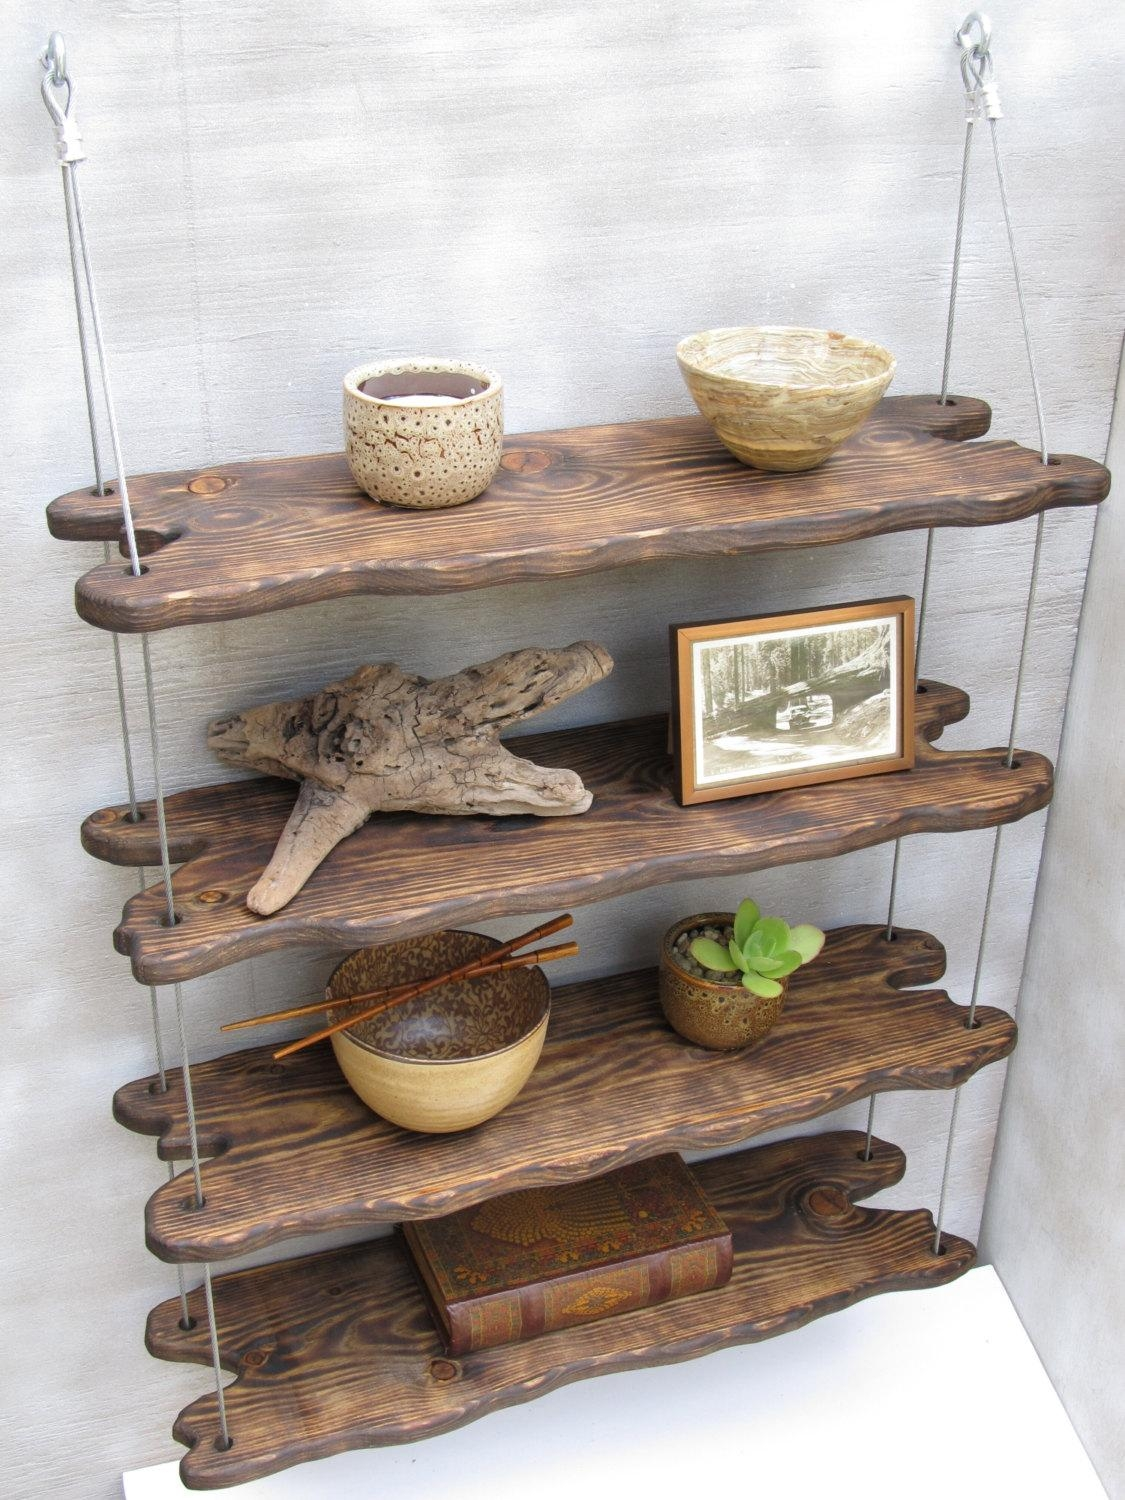 Wall Shelves Design: Reclaimed Driftwood Wall Shelves Diy Intended For Driftwood Wall Art For Sale (View 11 of 20)